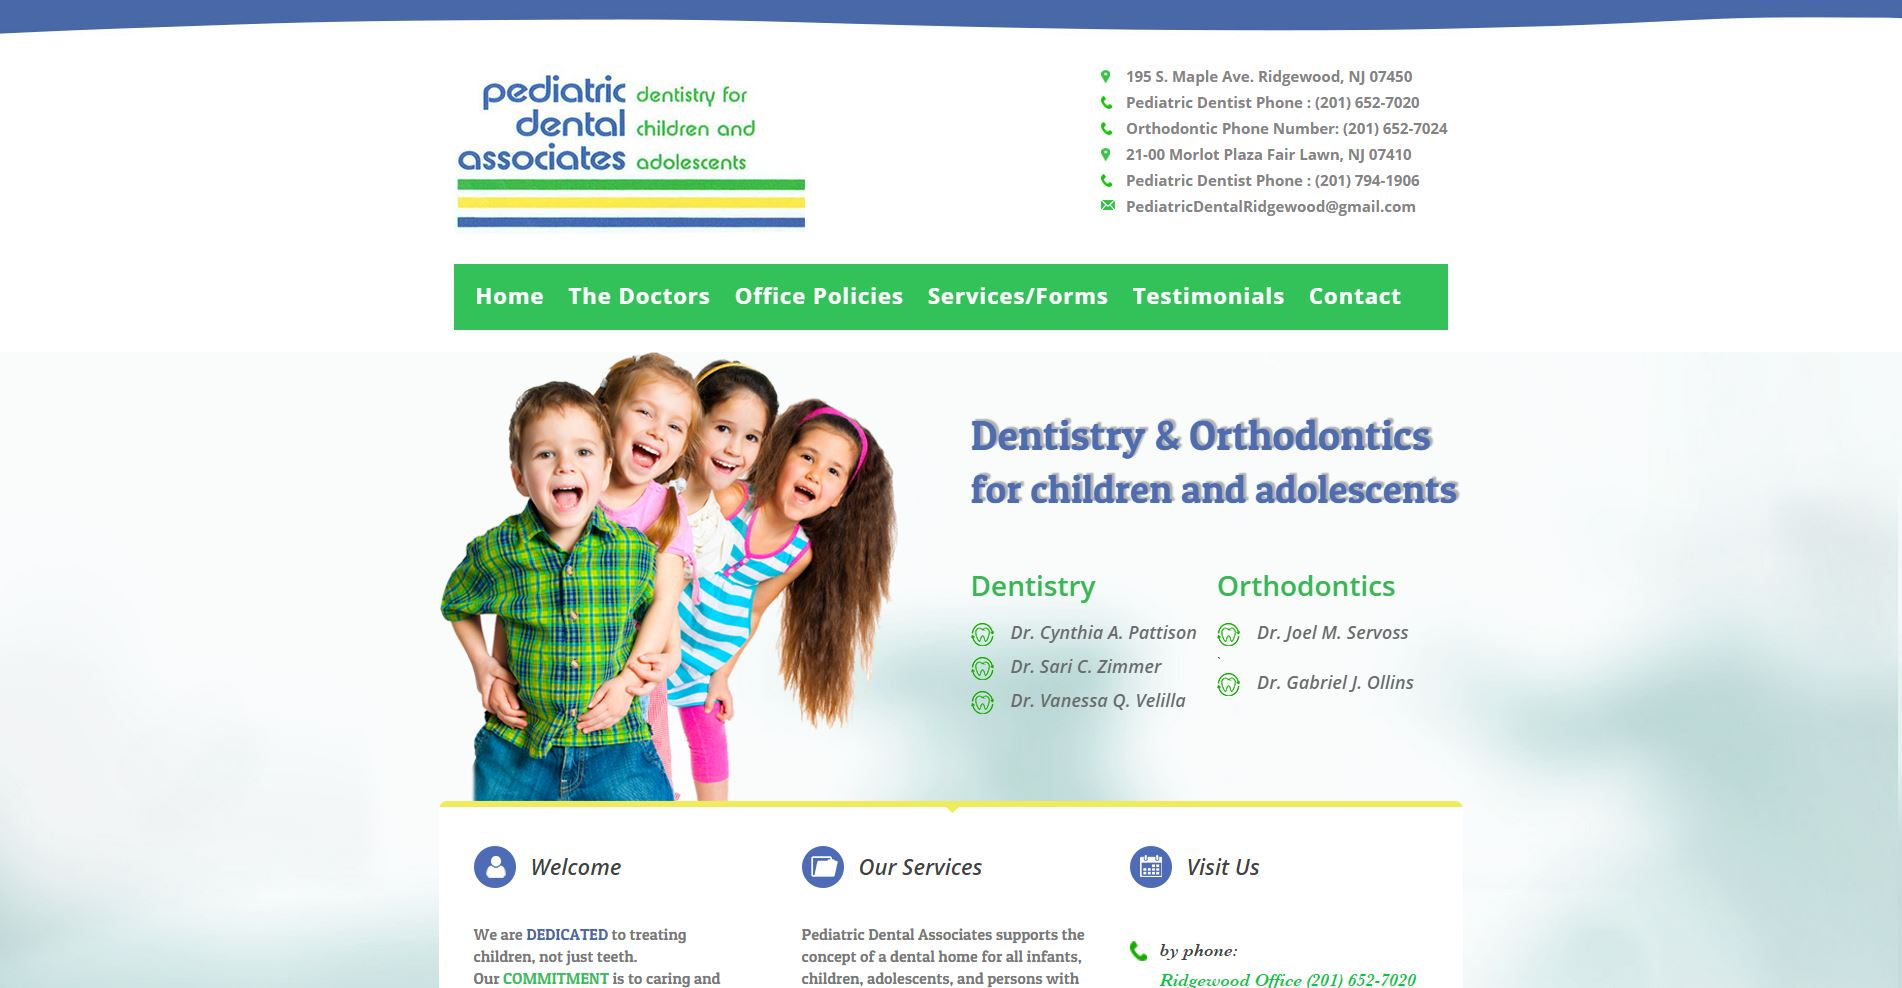 Pediatric Dental Associates Homepage